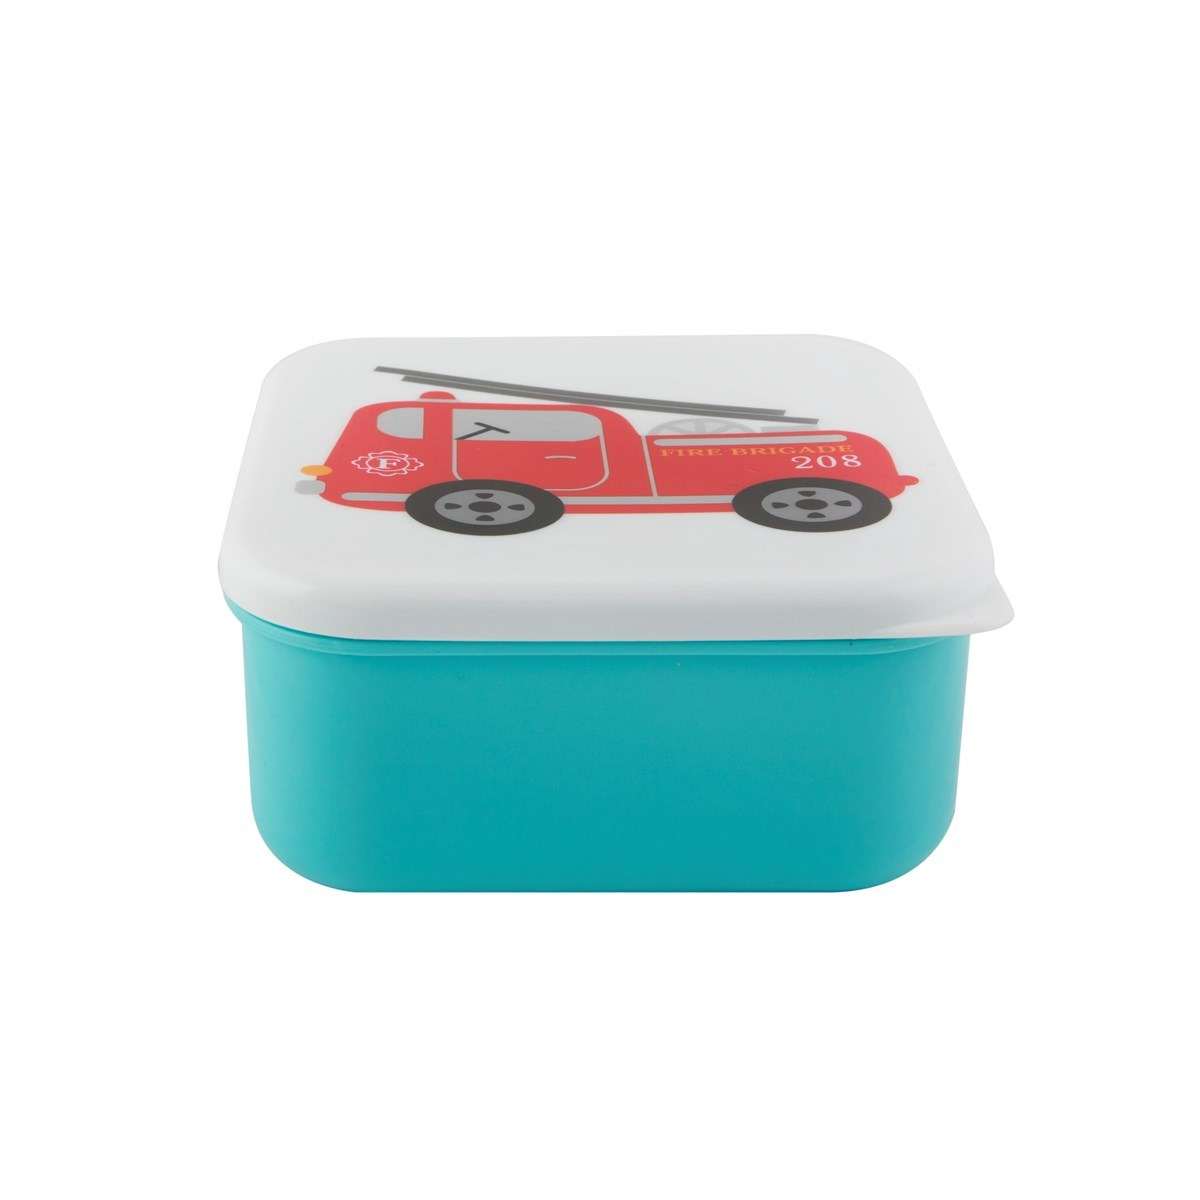 Sass /& Belle Small White Cloud Plastic Lunch Box